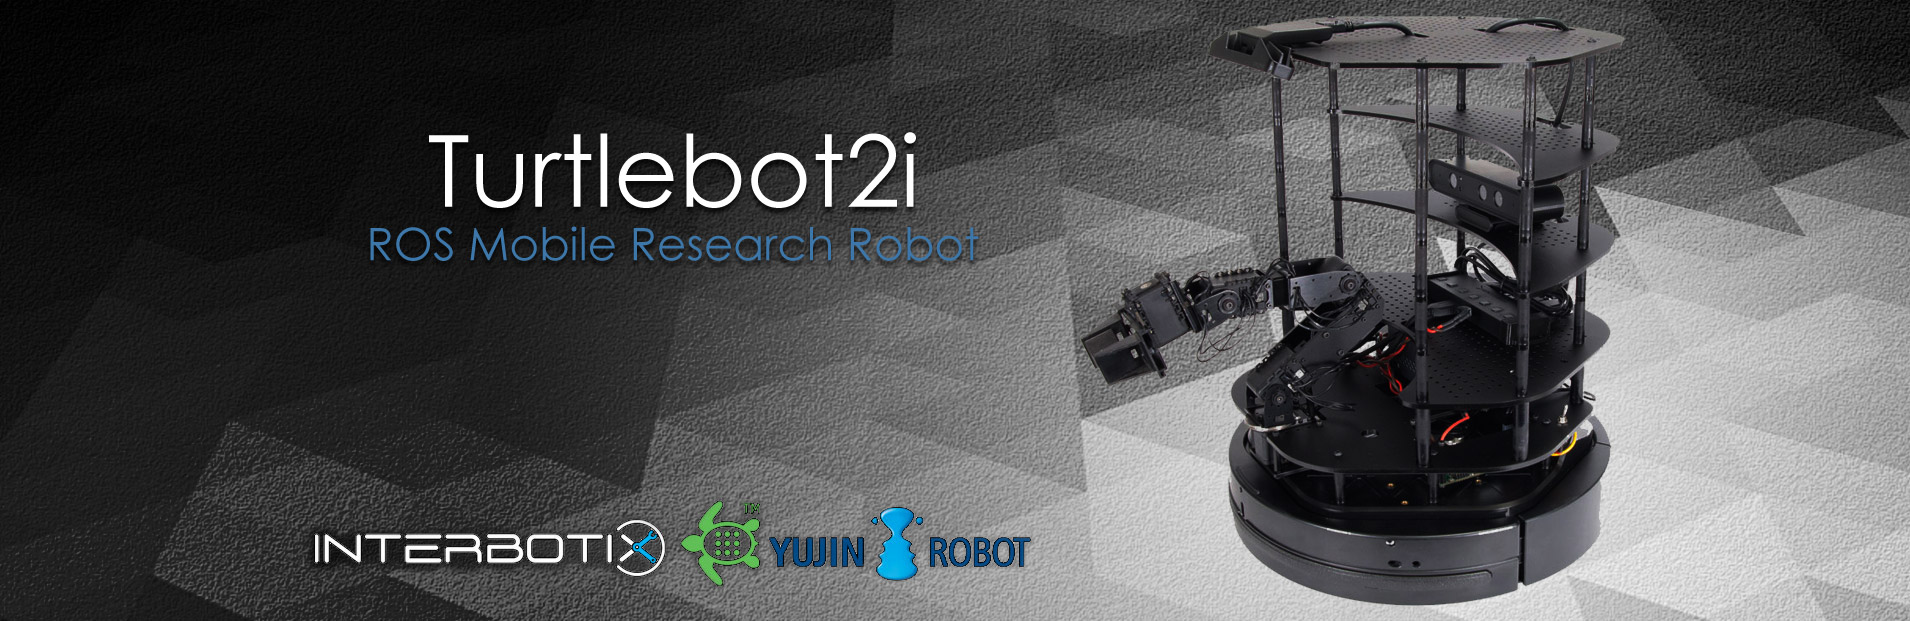 InterbotiX TurtleBot 2i